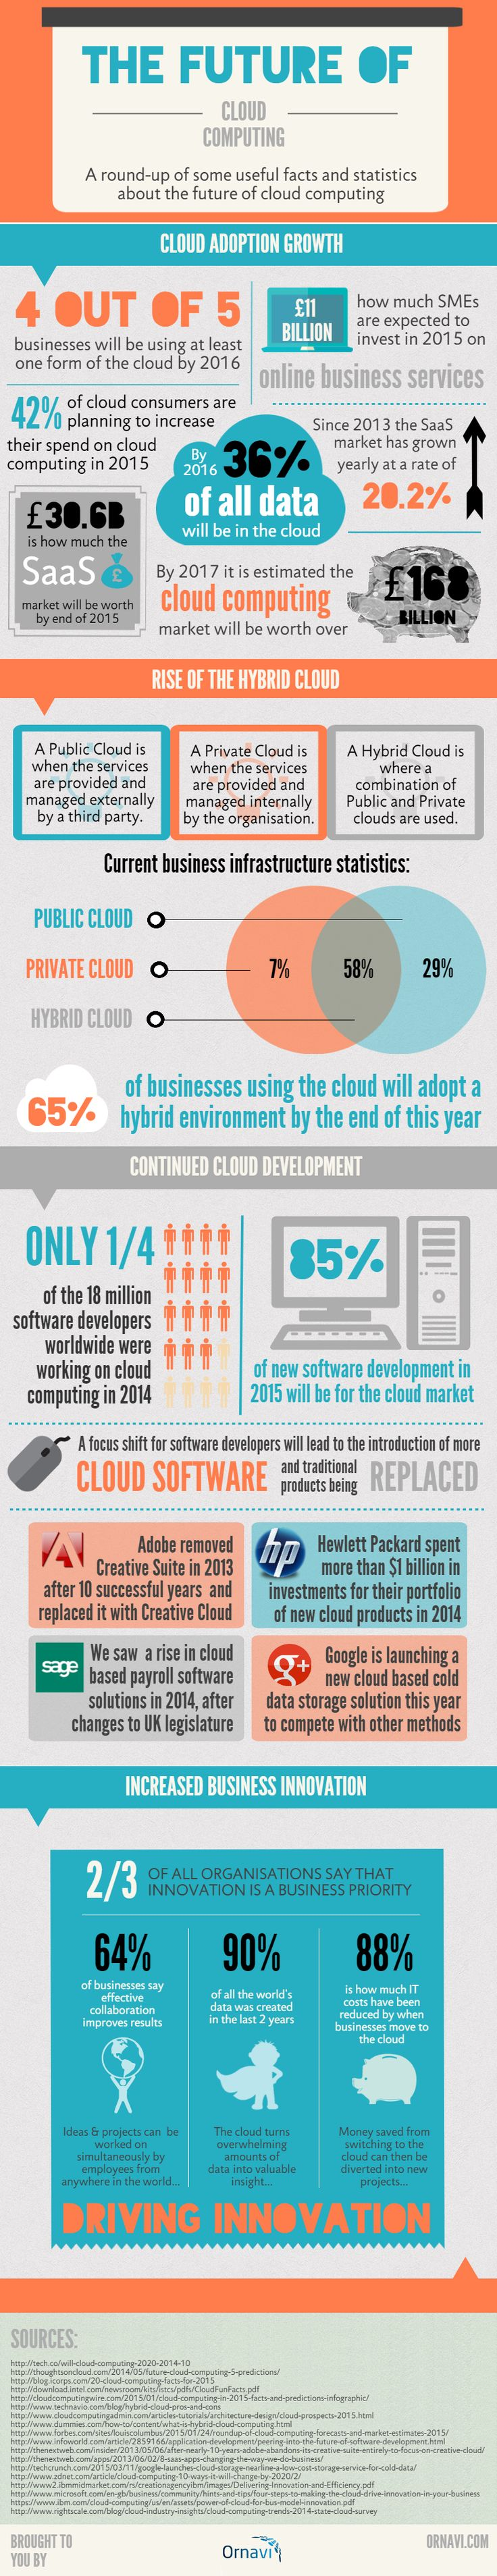 The Future of the Cloud #infographic #Business #Technology